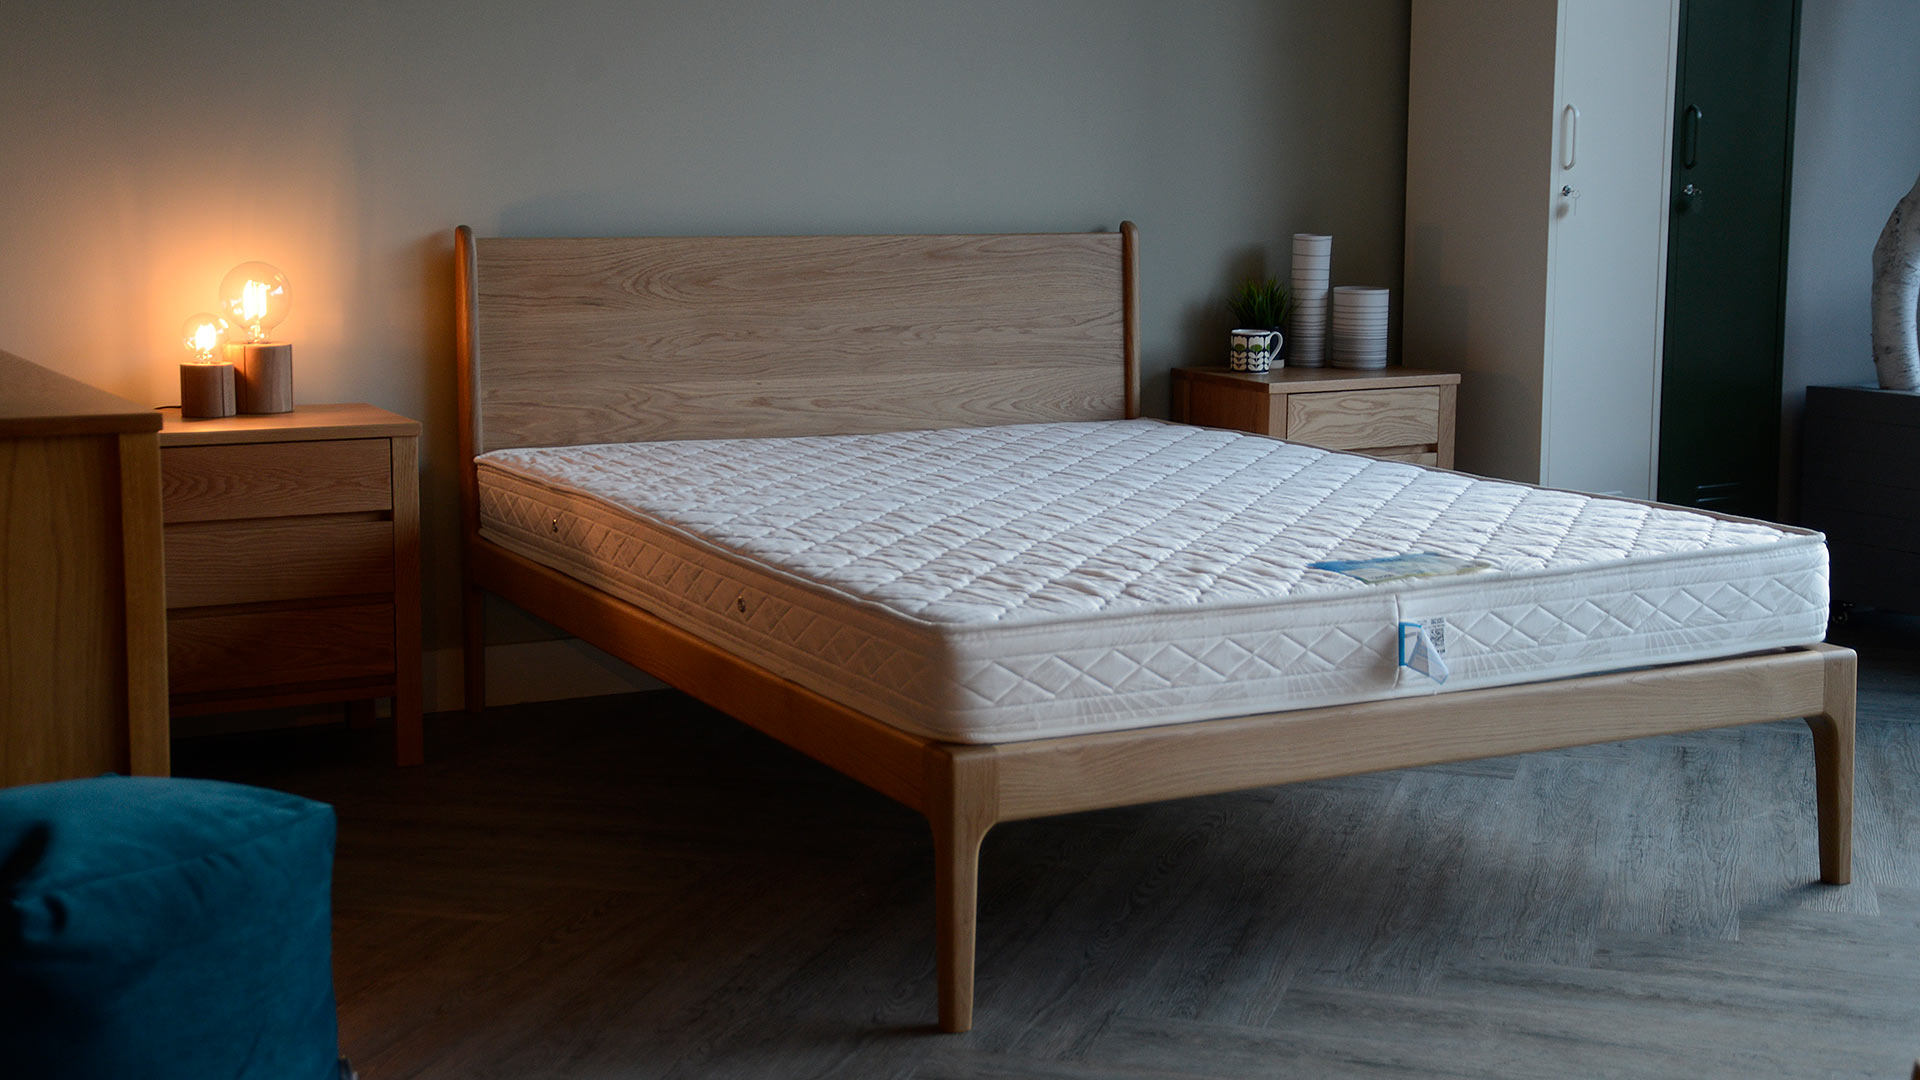 The Camden bed is a mid century style hand made wooden bedframe shown here in Oak